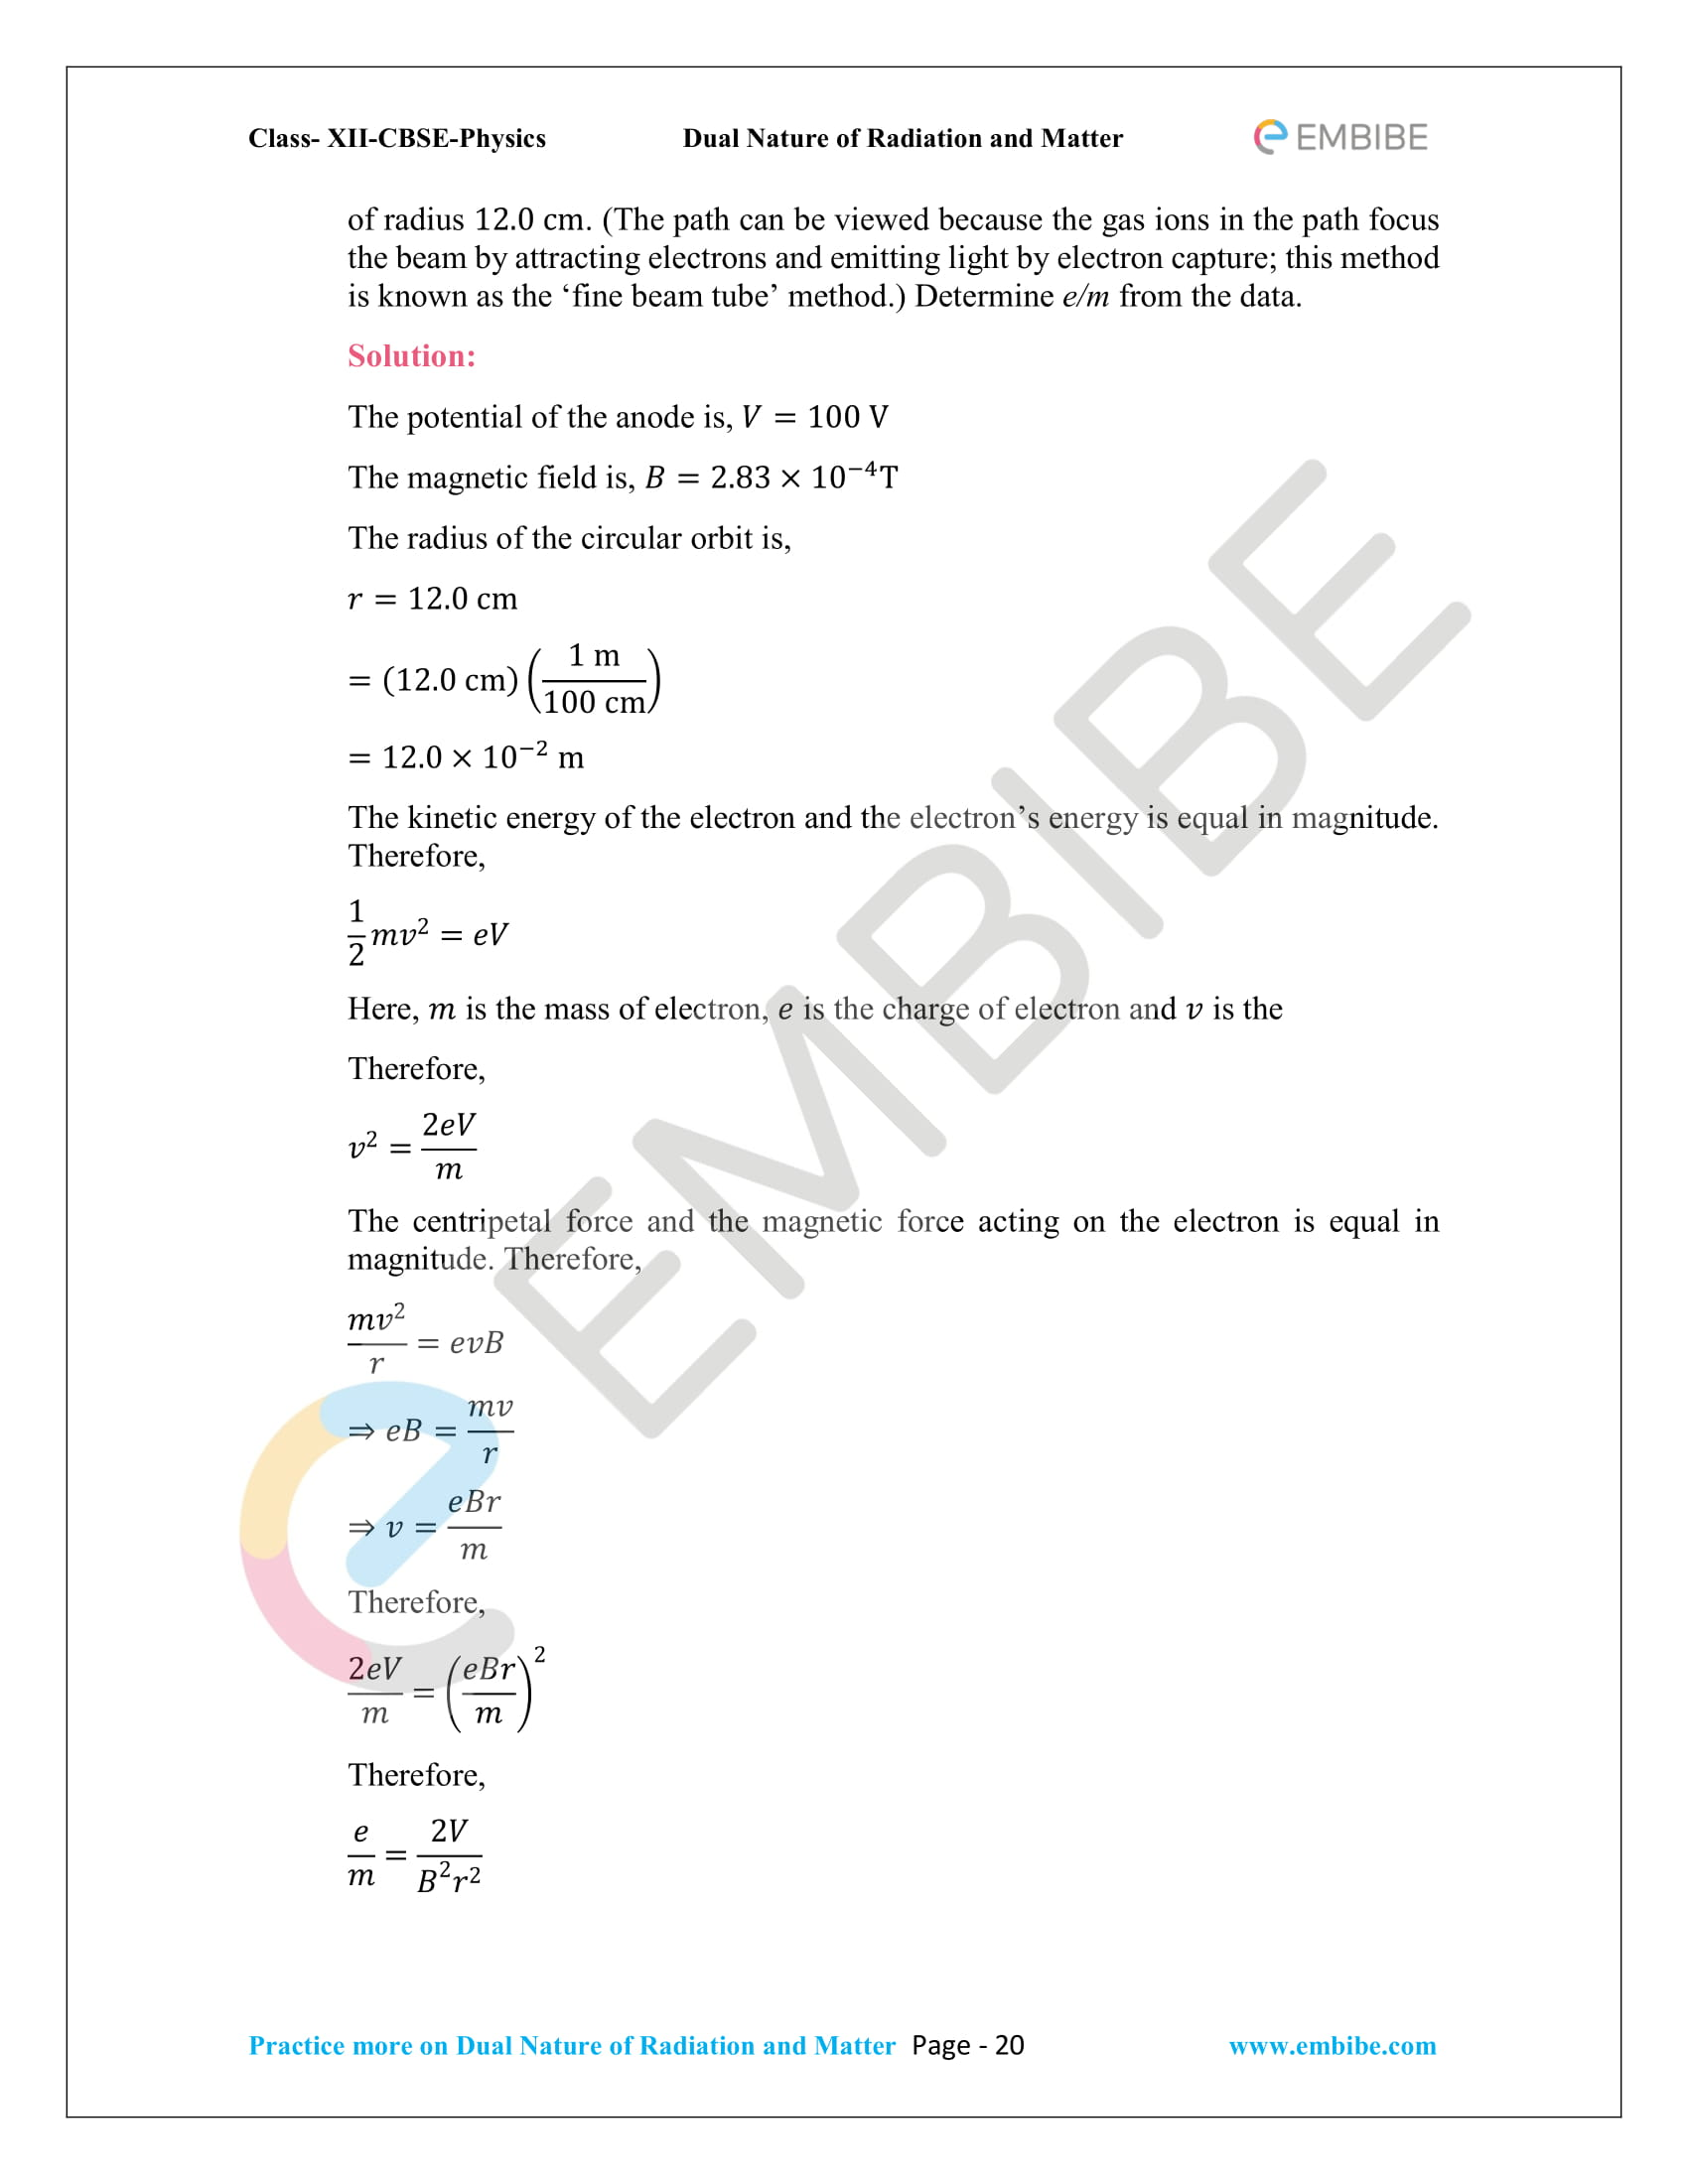 NCERT_Grade 12_Physics_Ch_11_Dual Nature of Radiation and Matter-20